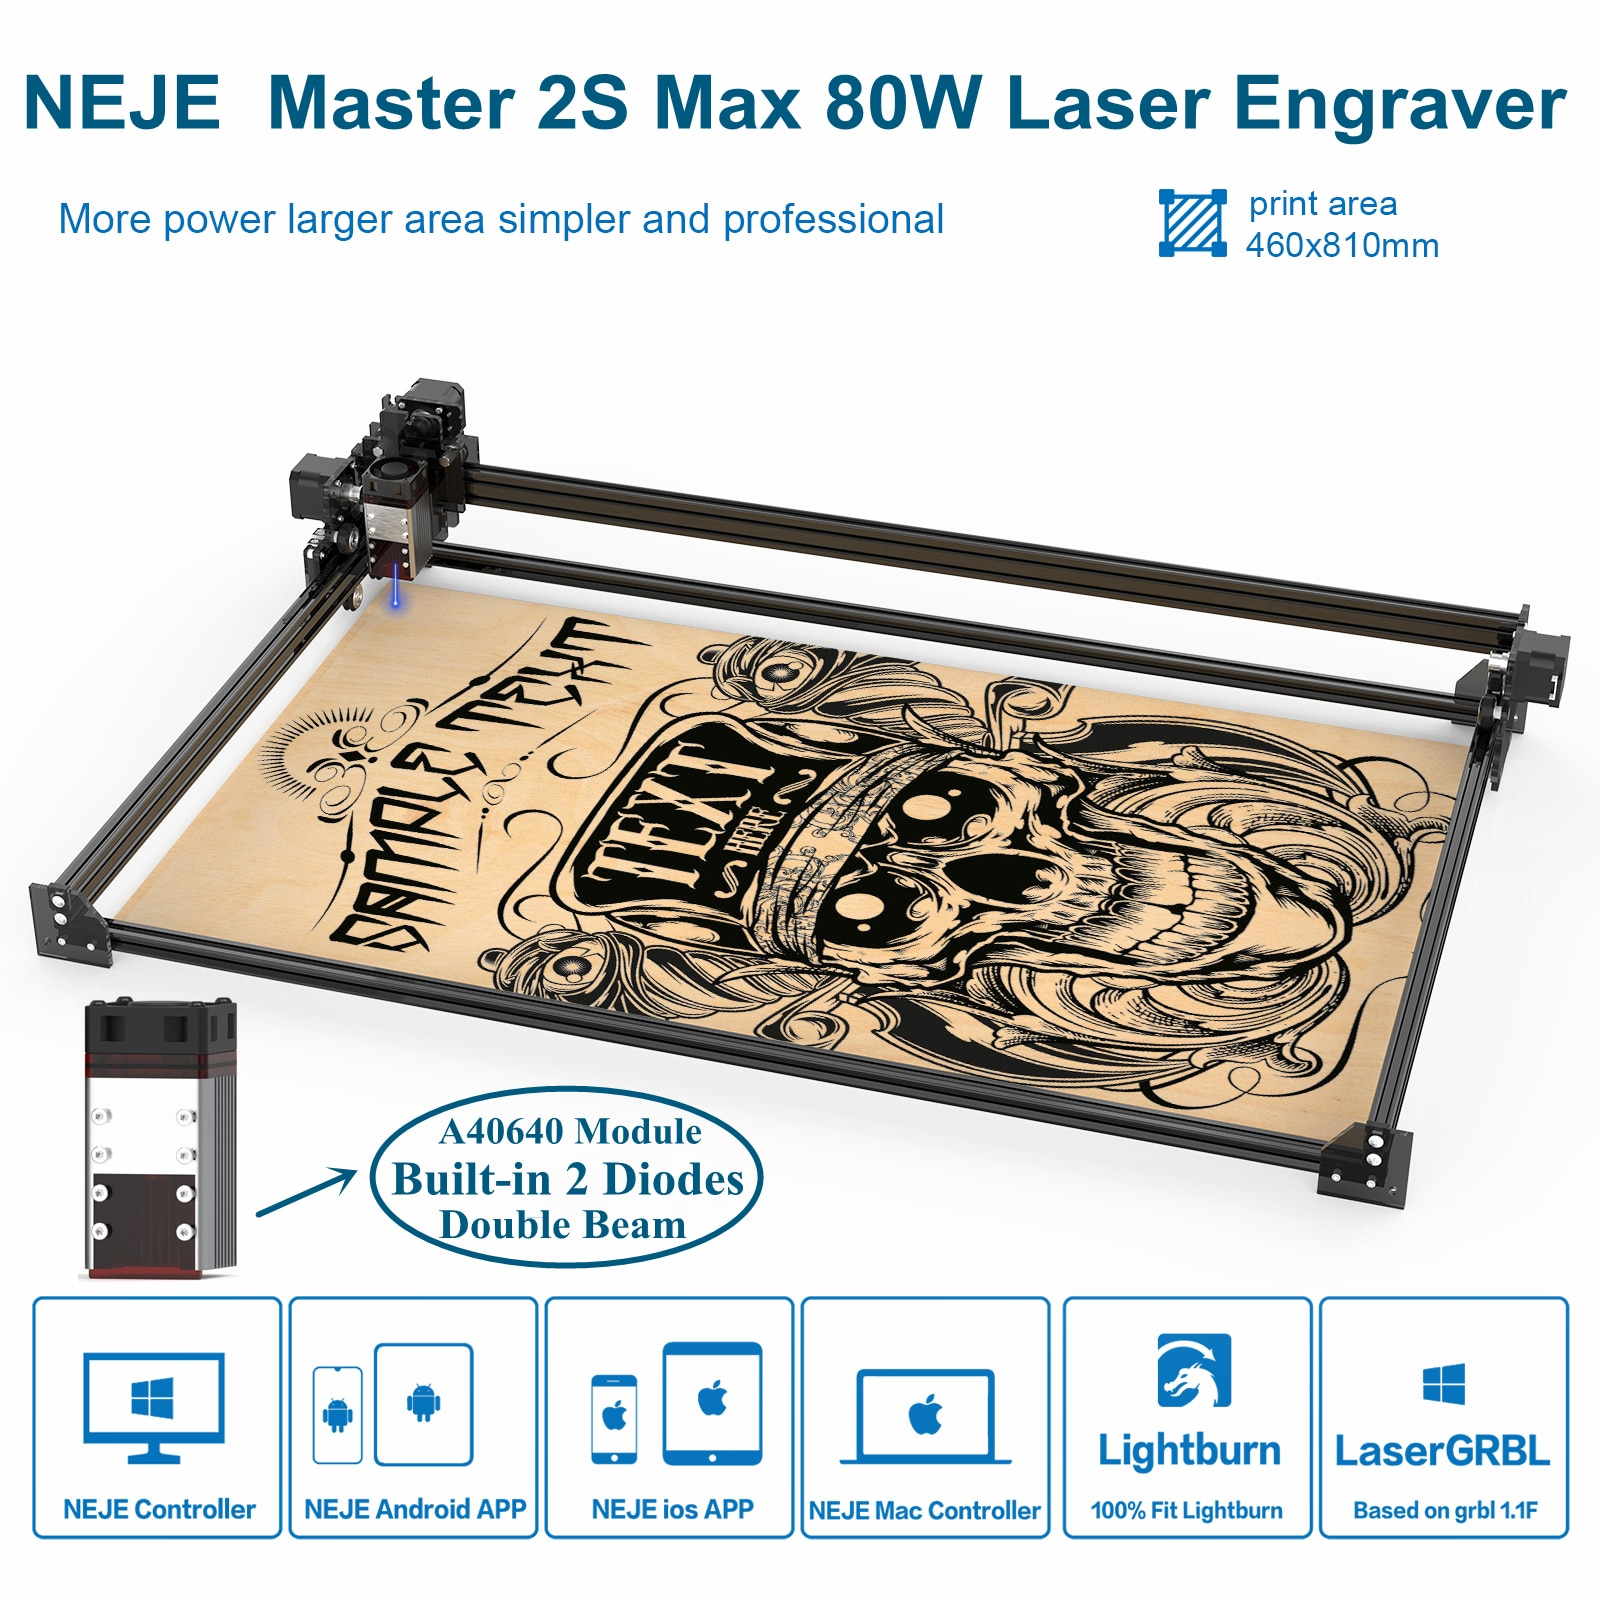 NEJE Master 2s Max 80W CNC Laser Engraver Cutter Cutting Engraving Machine Router Lightburn Laser For Wood With App Contorl